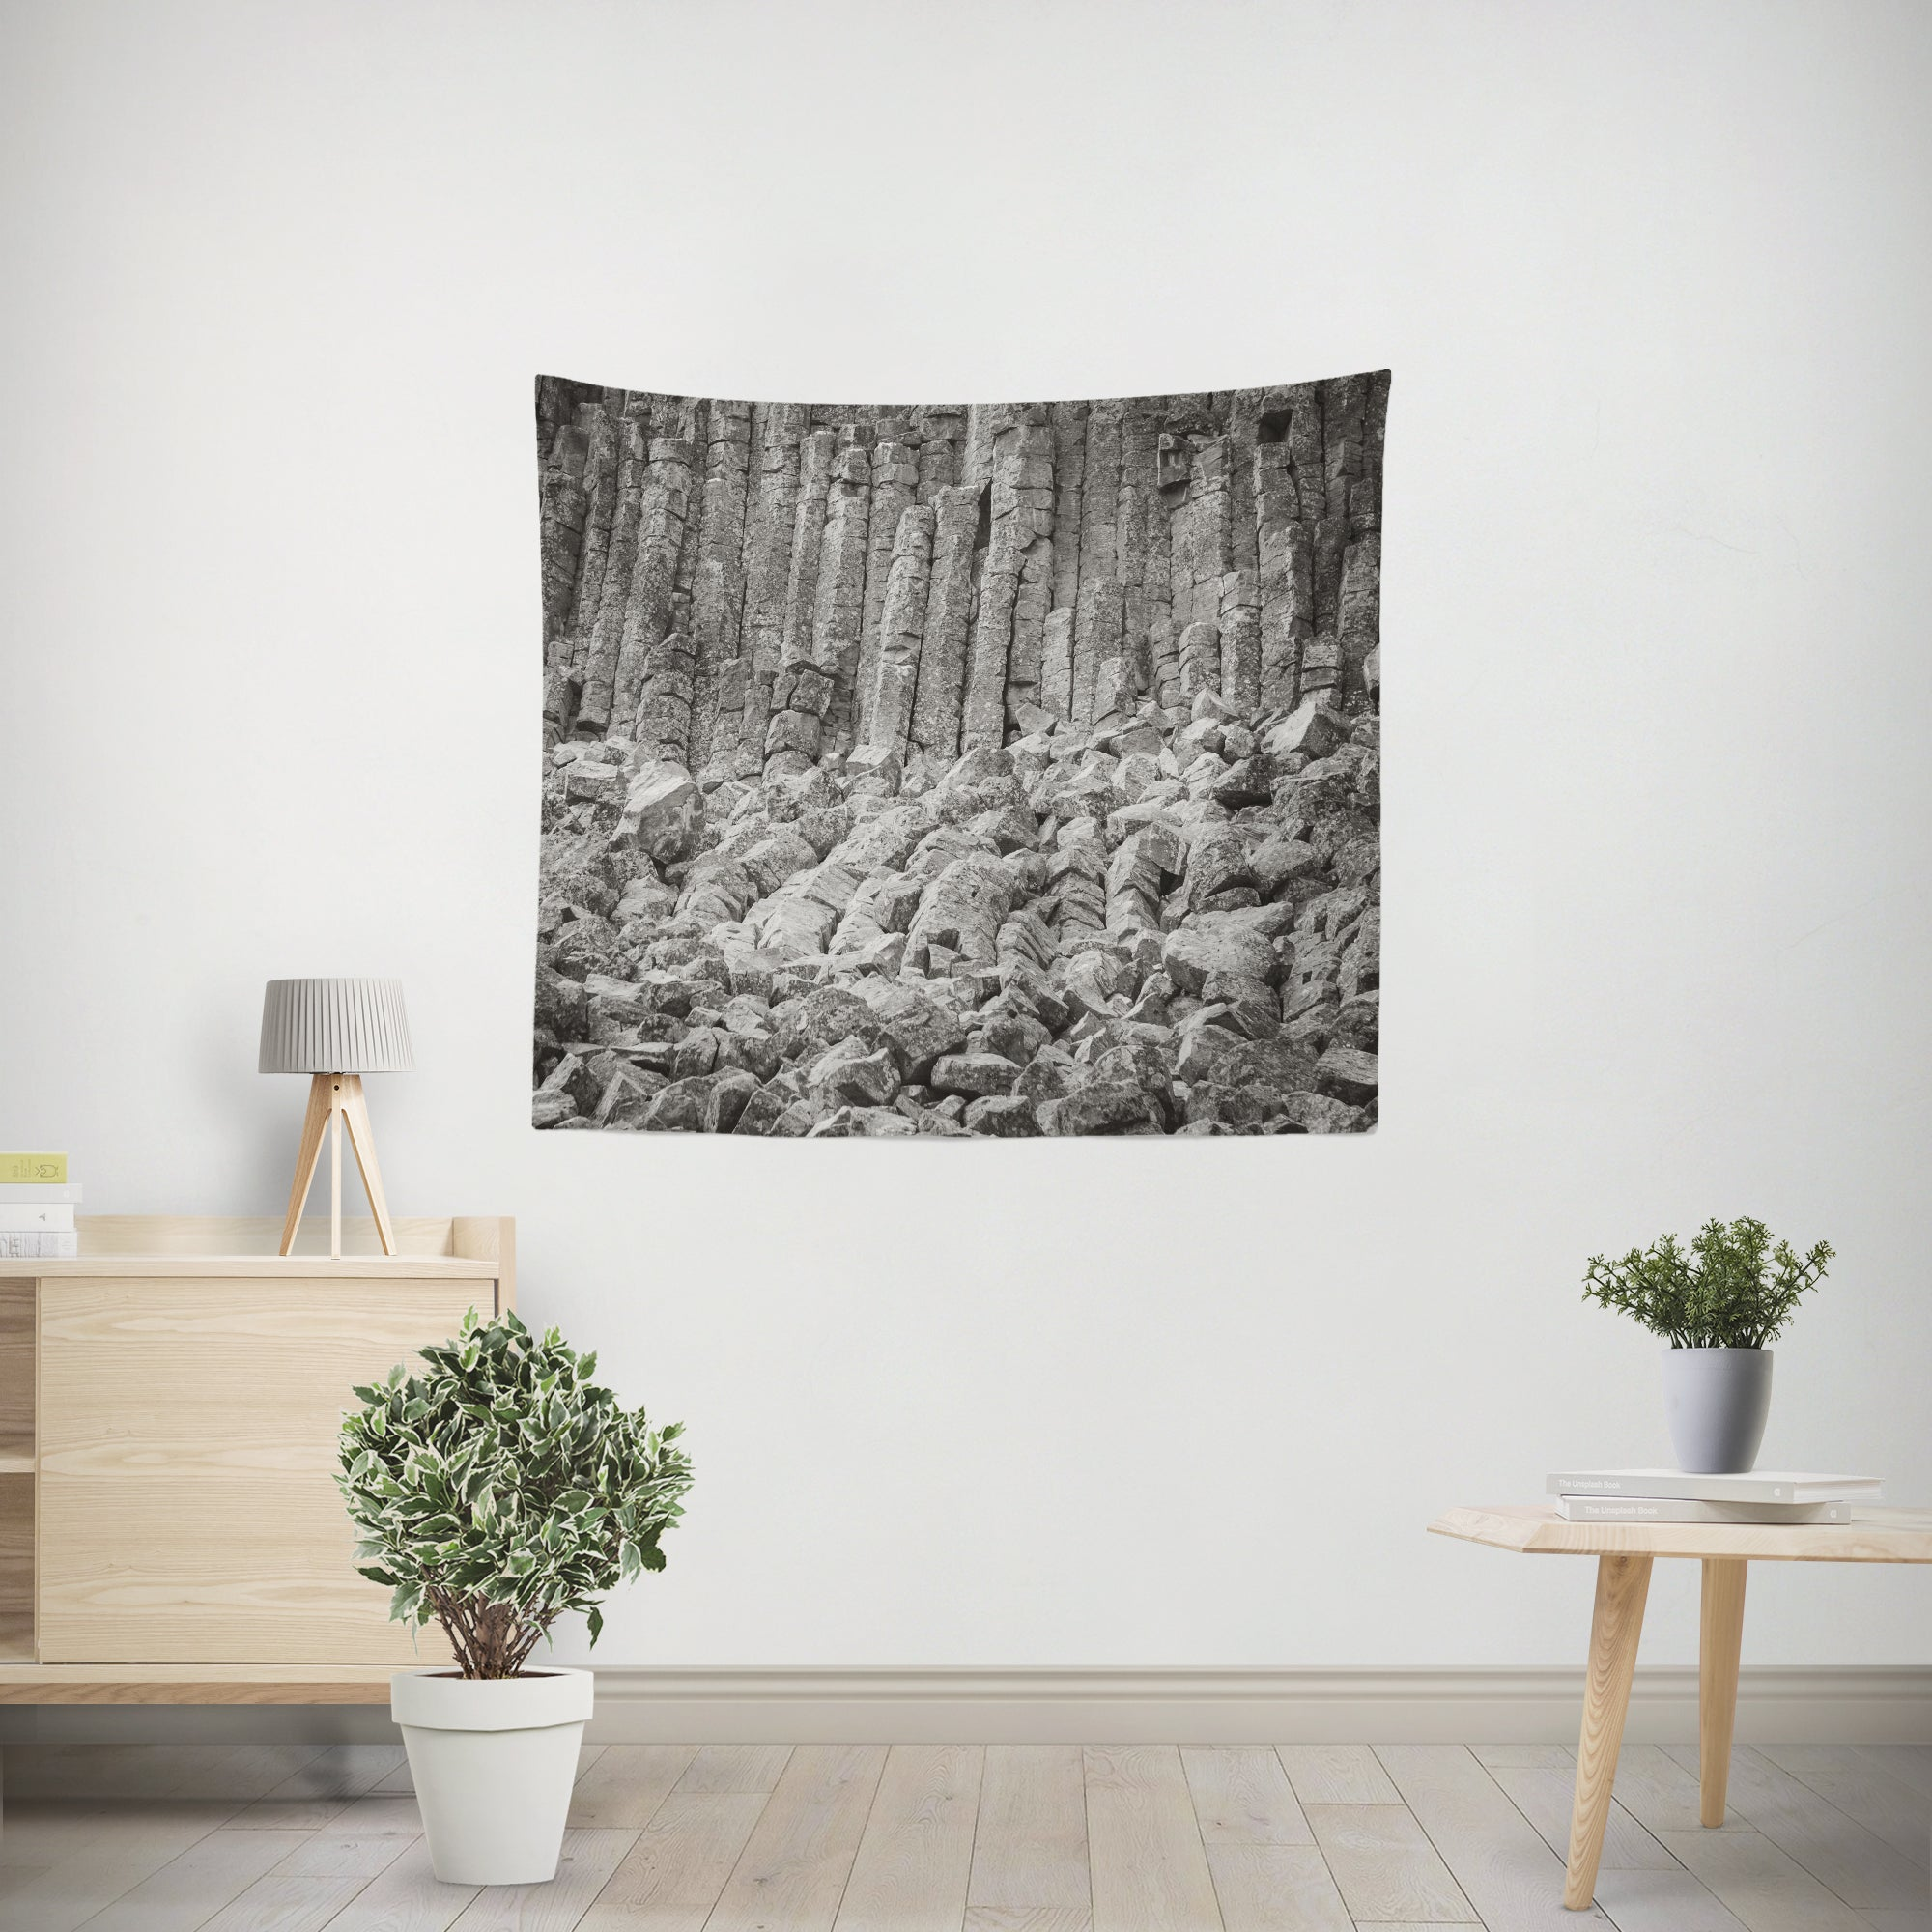 Basalt Columns Black and White Microfiber Wall Tapestry